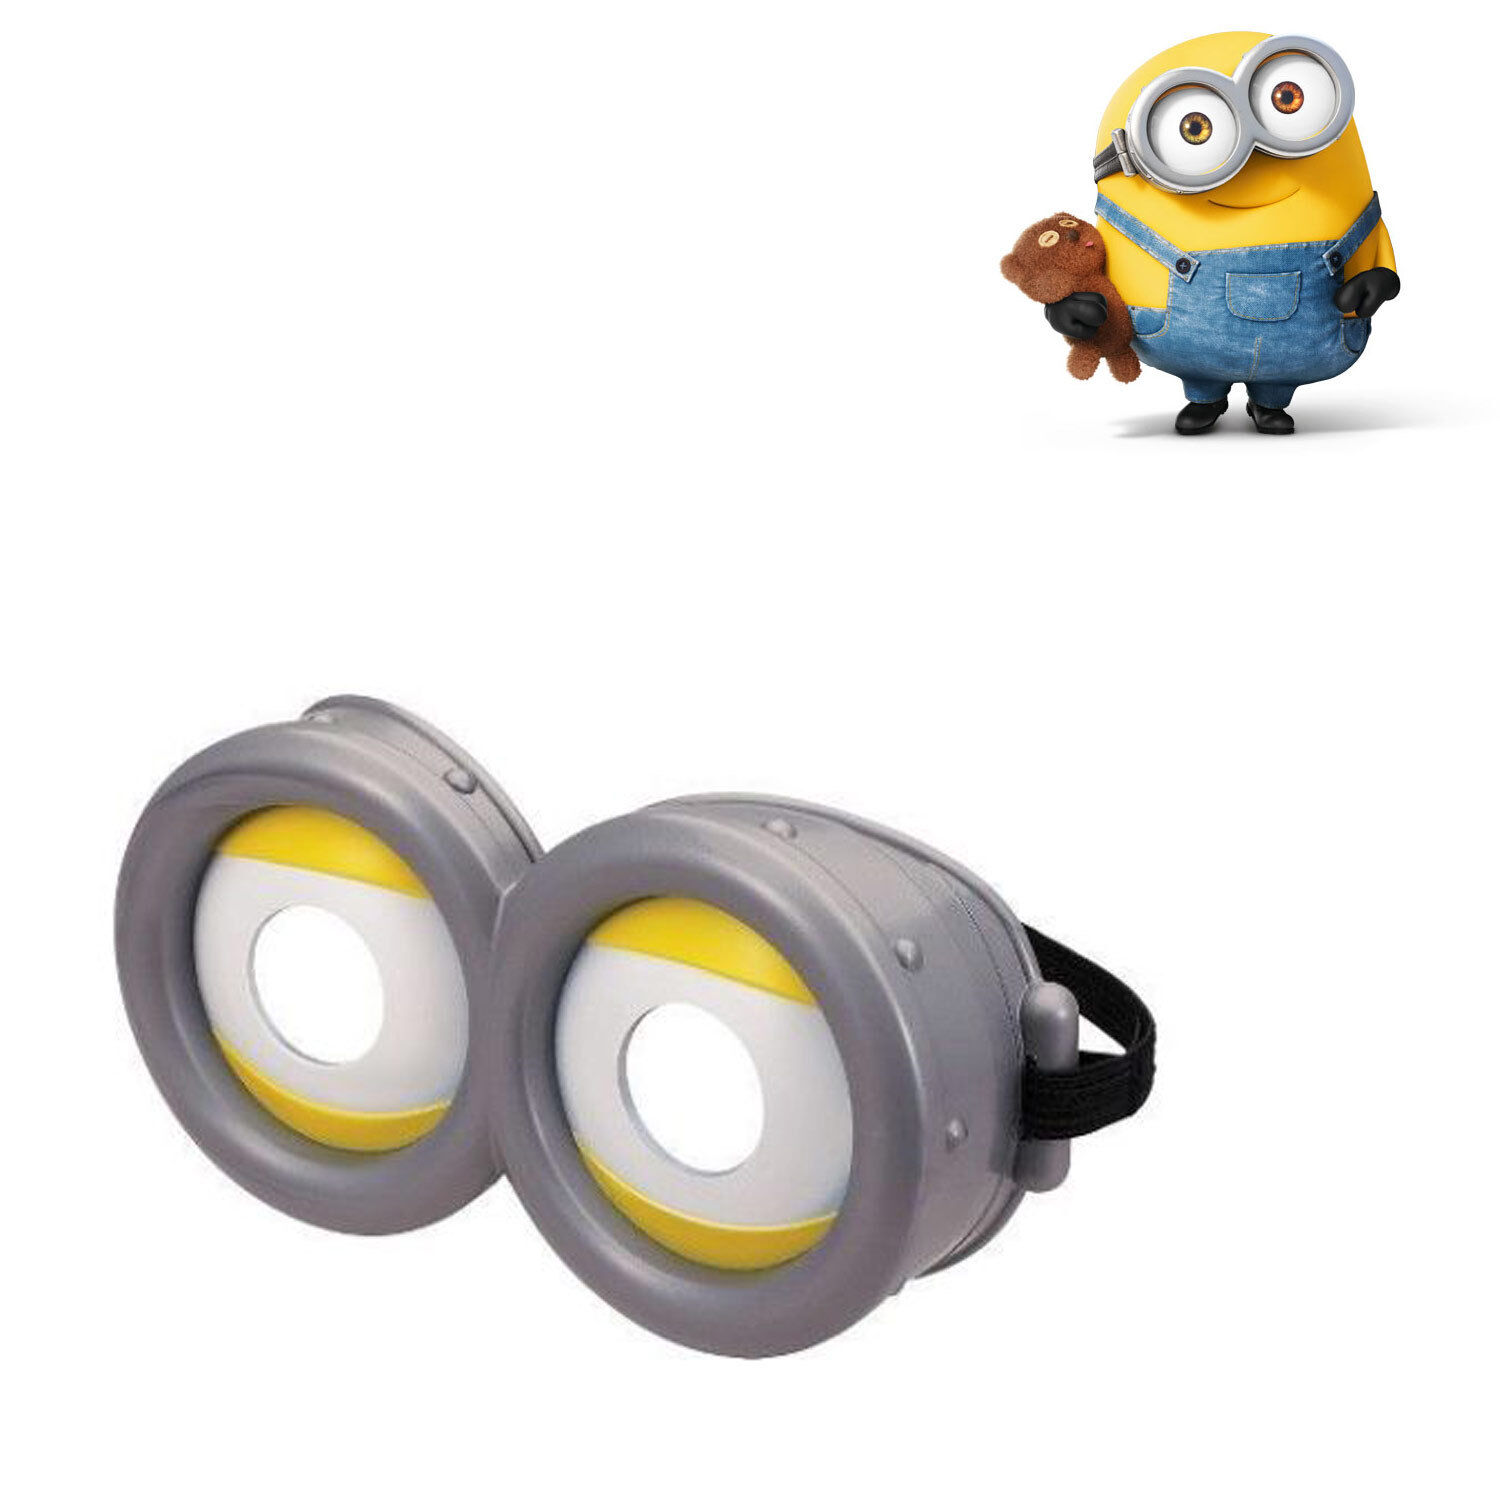 Despicable Me 1 2 3 Minion Goggles Brand New & Sealed Toys Games Boys Girls